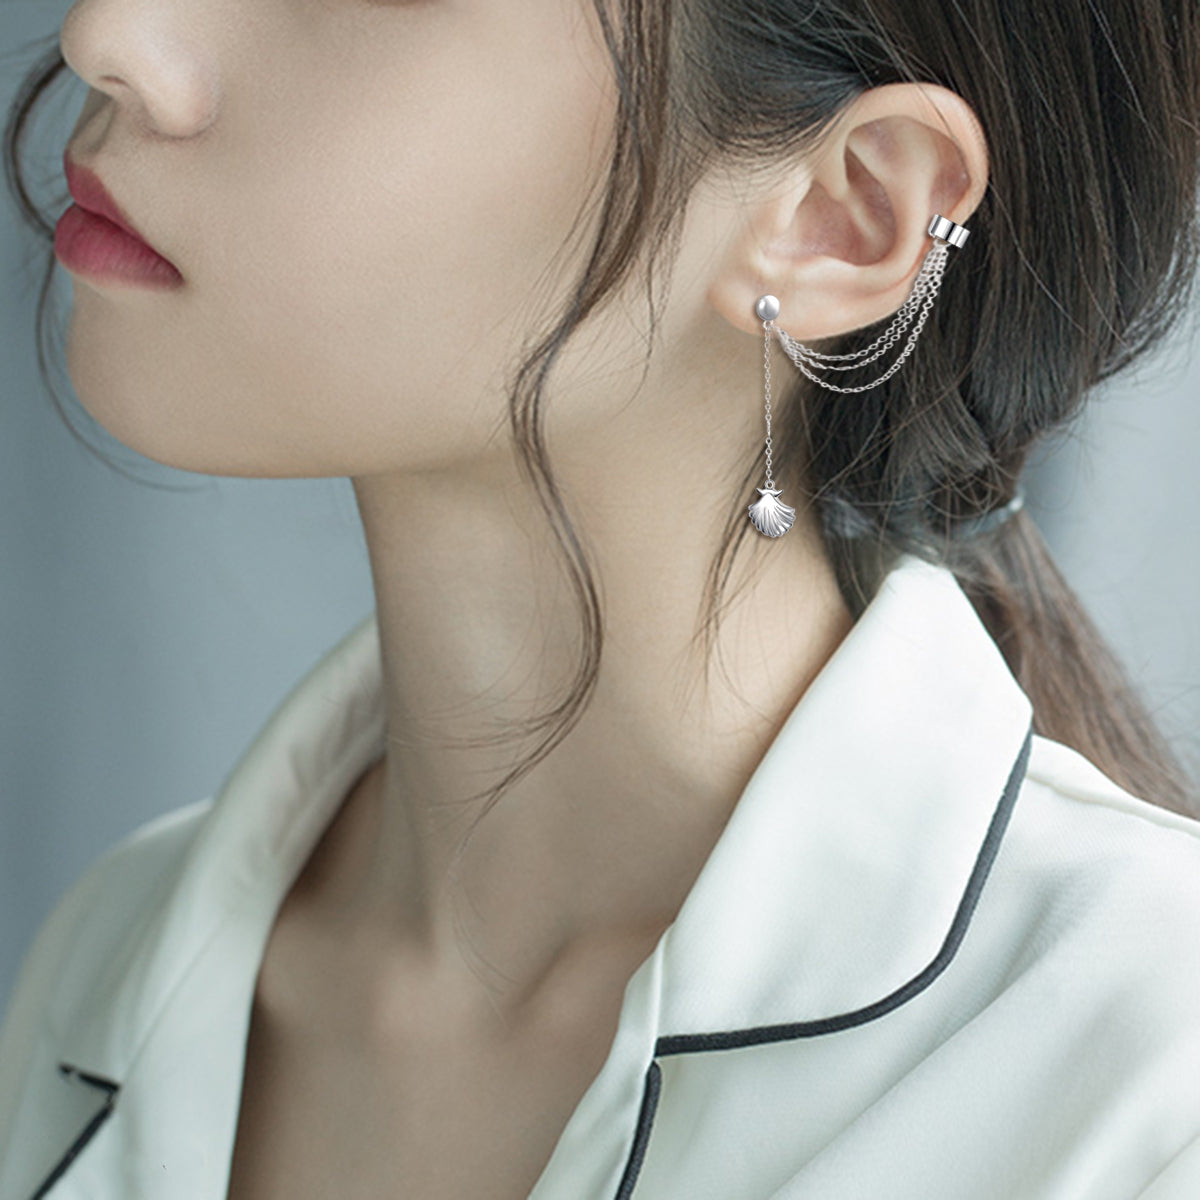 Scallop Ear Crawler Earring Climber Multi Layered Studs Cuffs Ear Wrap Pin Vine Charm Clip On Jewelry